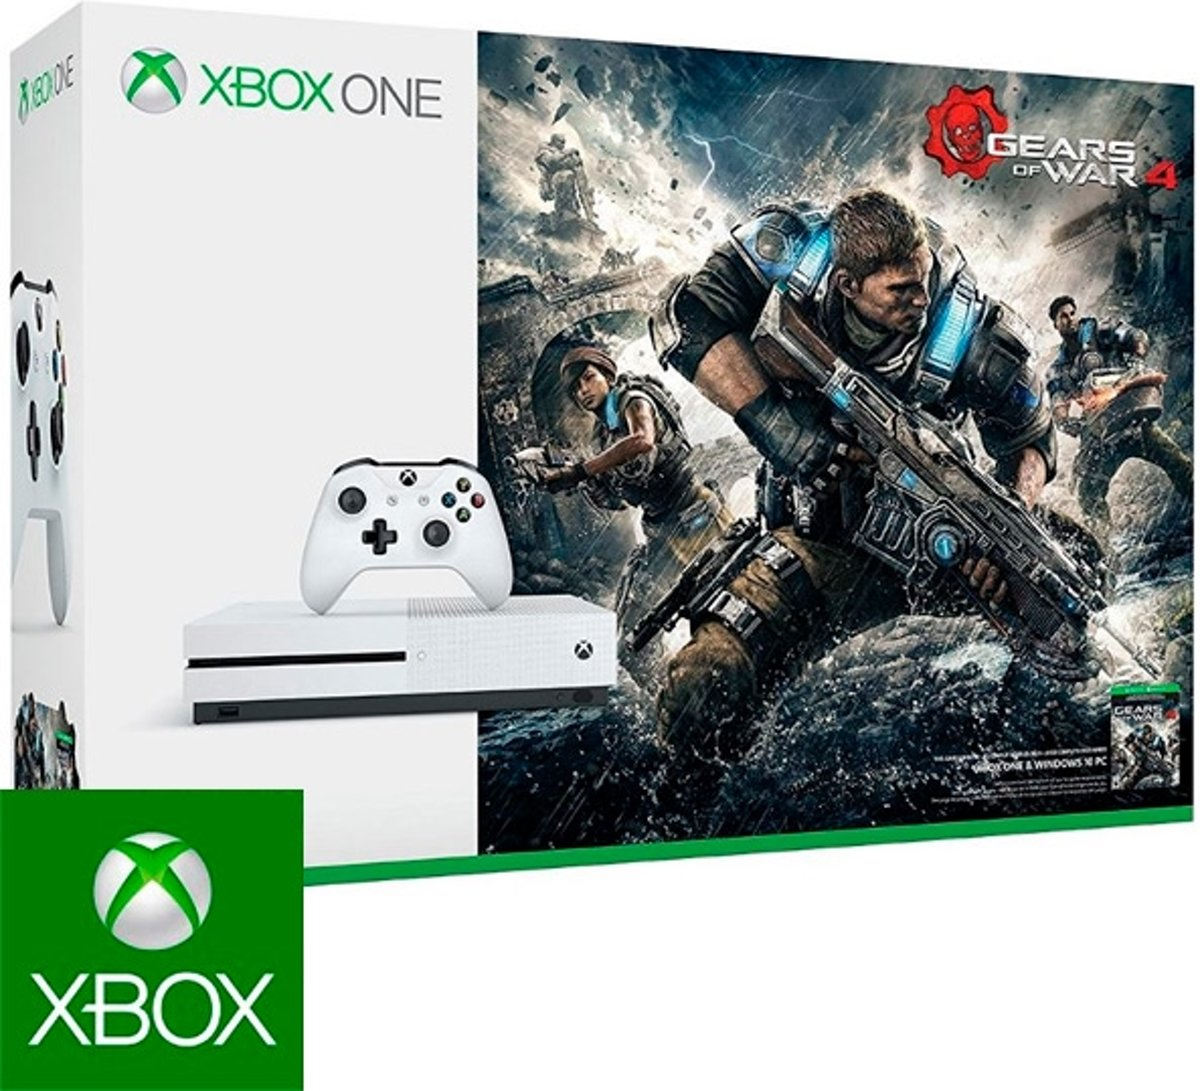 Xbox One S Gears of War 4 console - 1 TB kopen